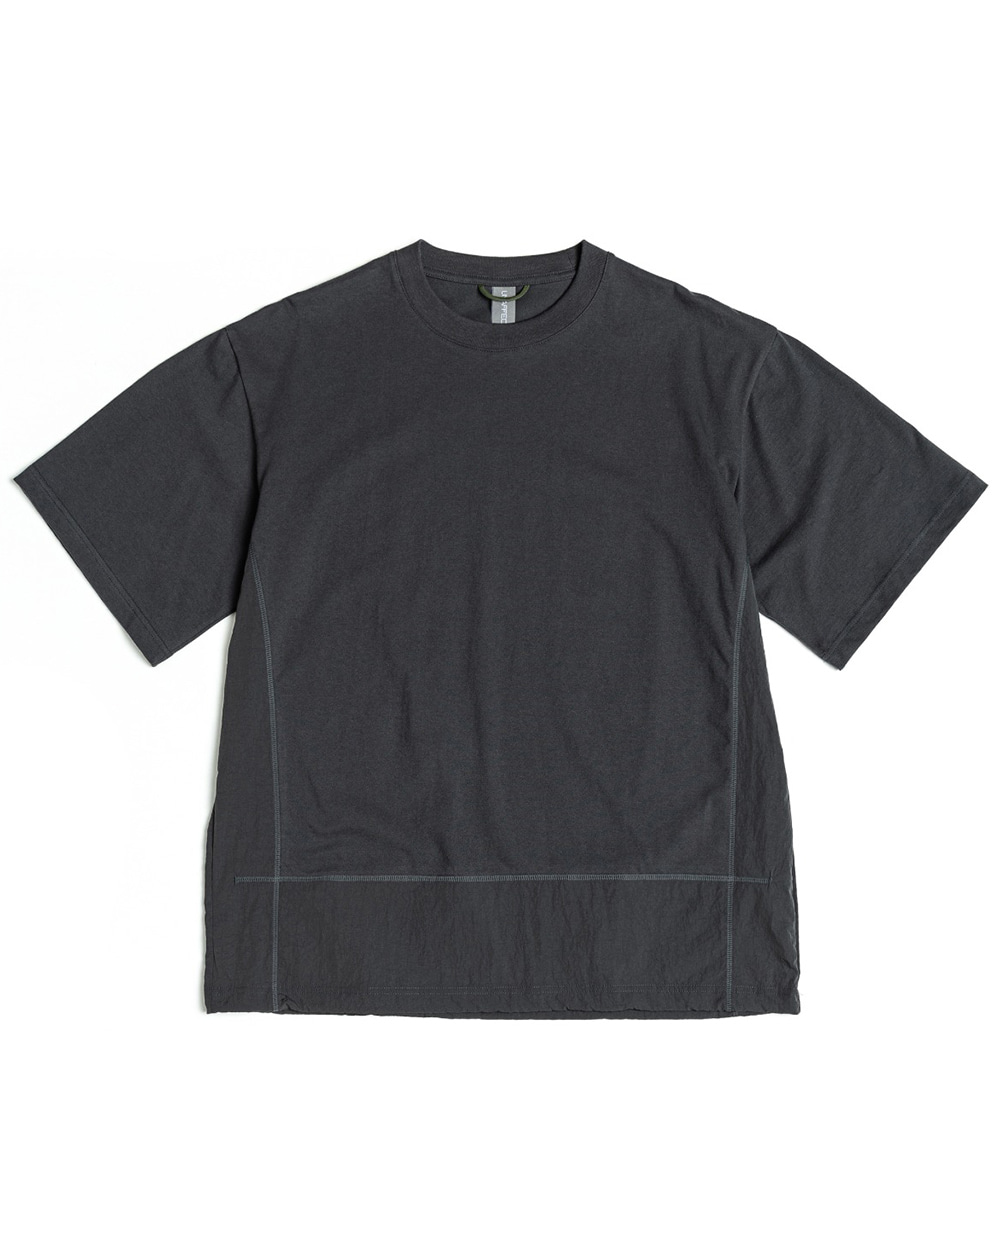 언어펙티드 CONTRAST PANEL T-SHIRT (Charcoal blue)